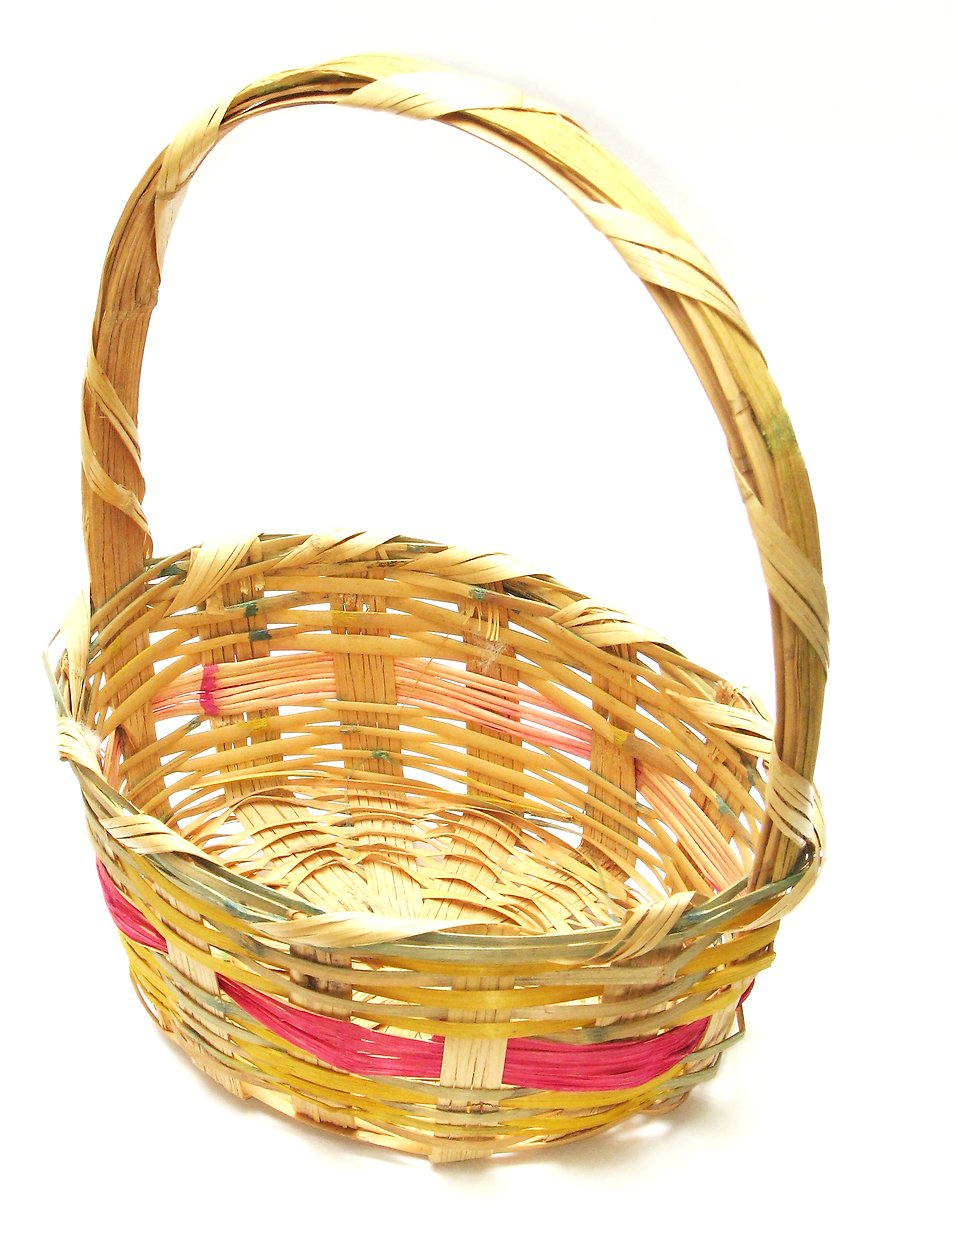 Empty easter basket clipart jpg royalty free stock Empty Easter Basket Clipart - Clipart Kid jpg royalty free stock